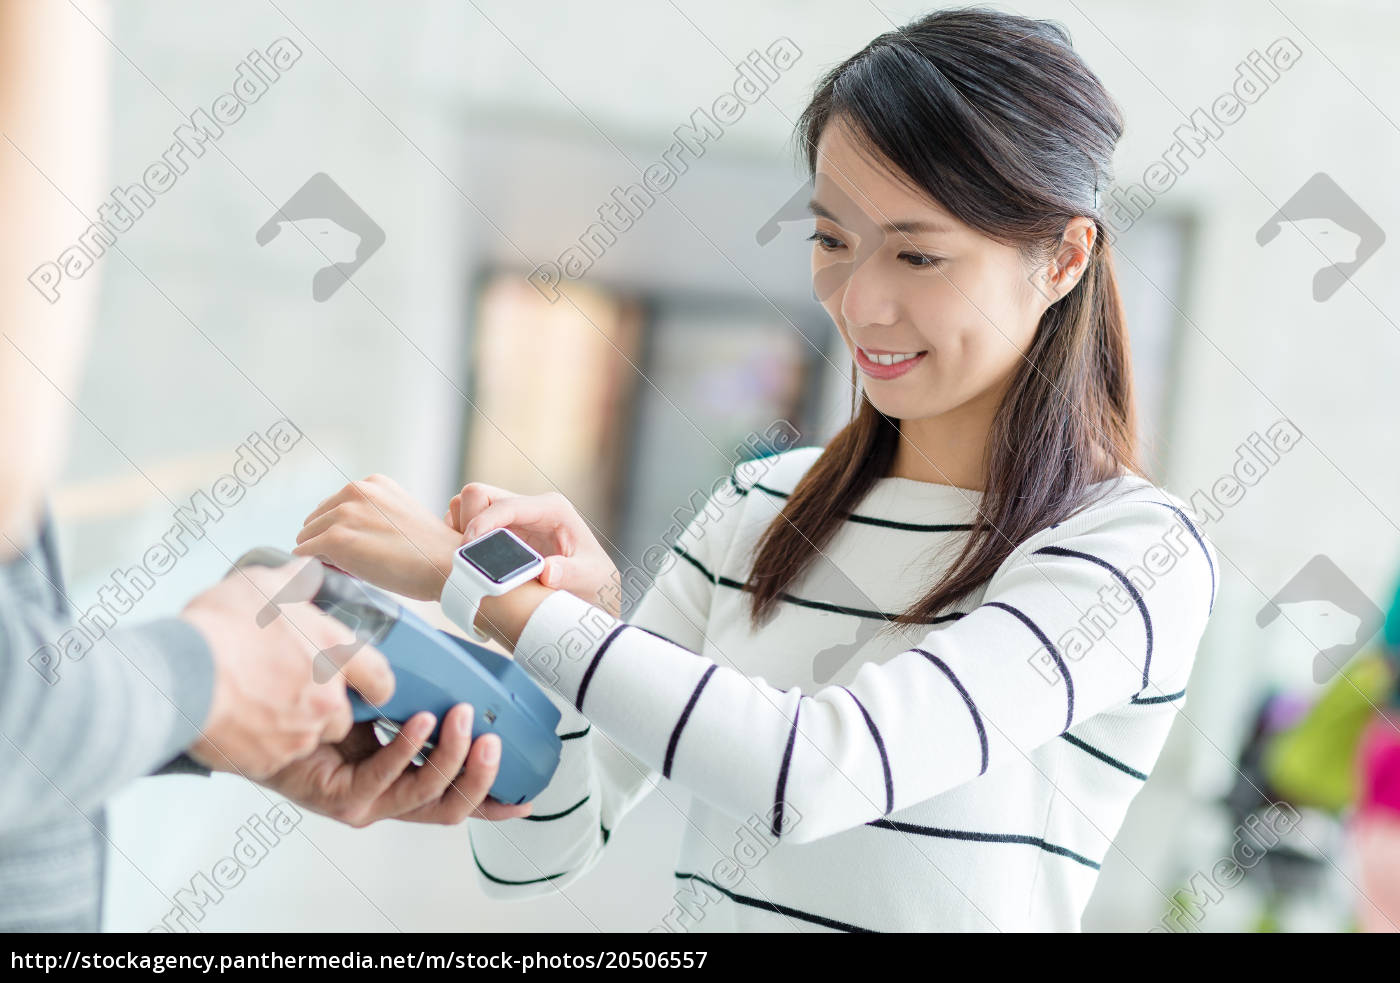 woman, using, smart, watch, to, pay - 20506557